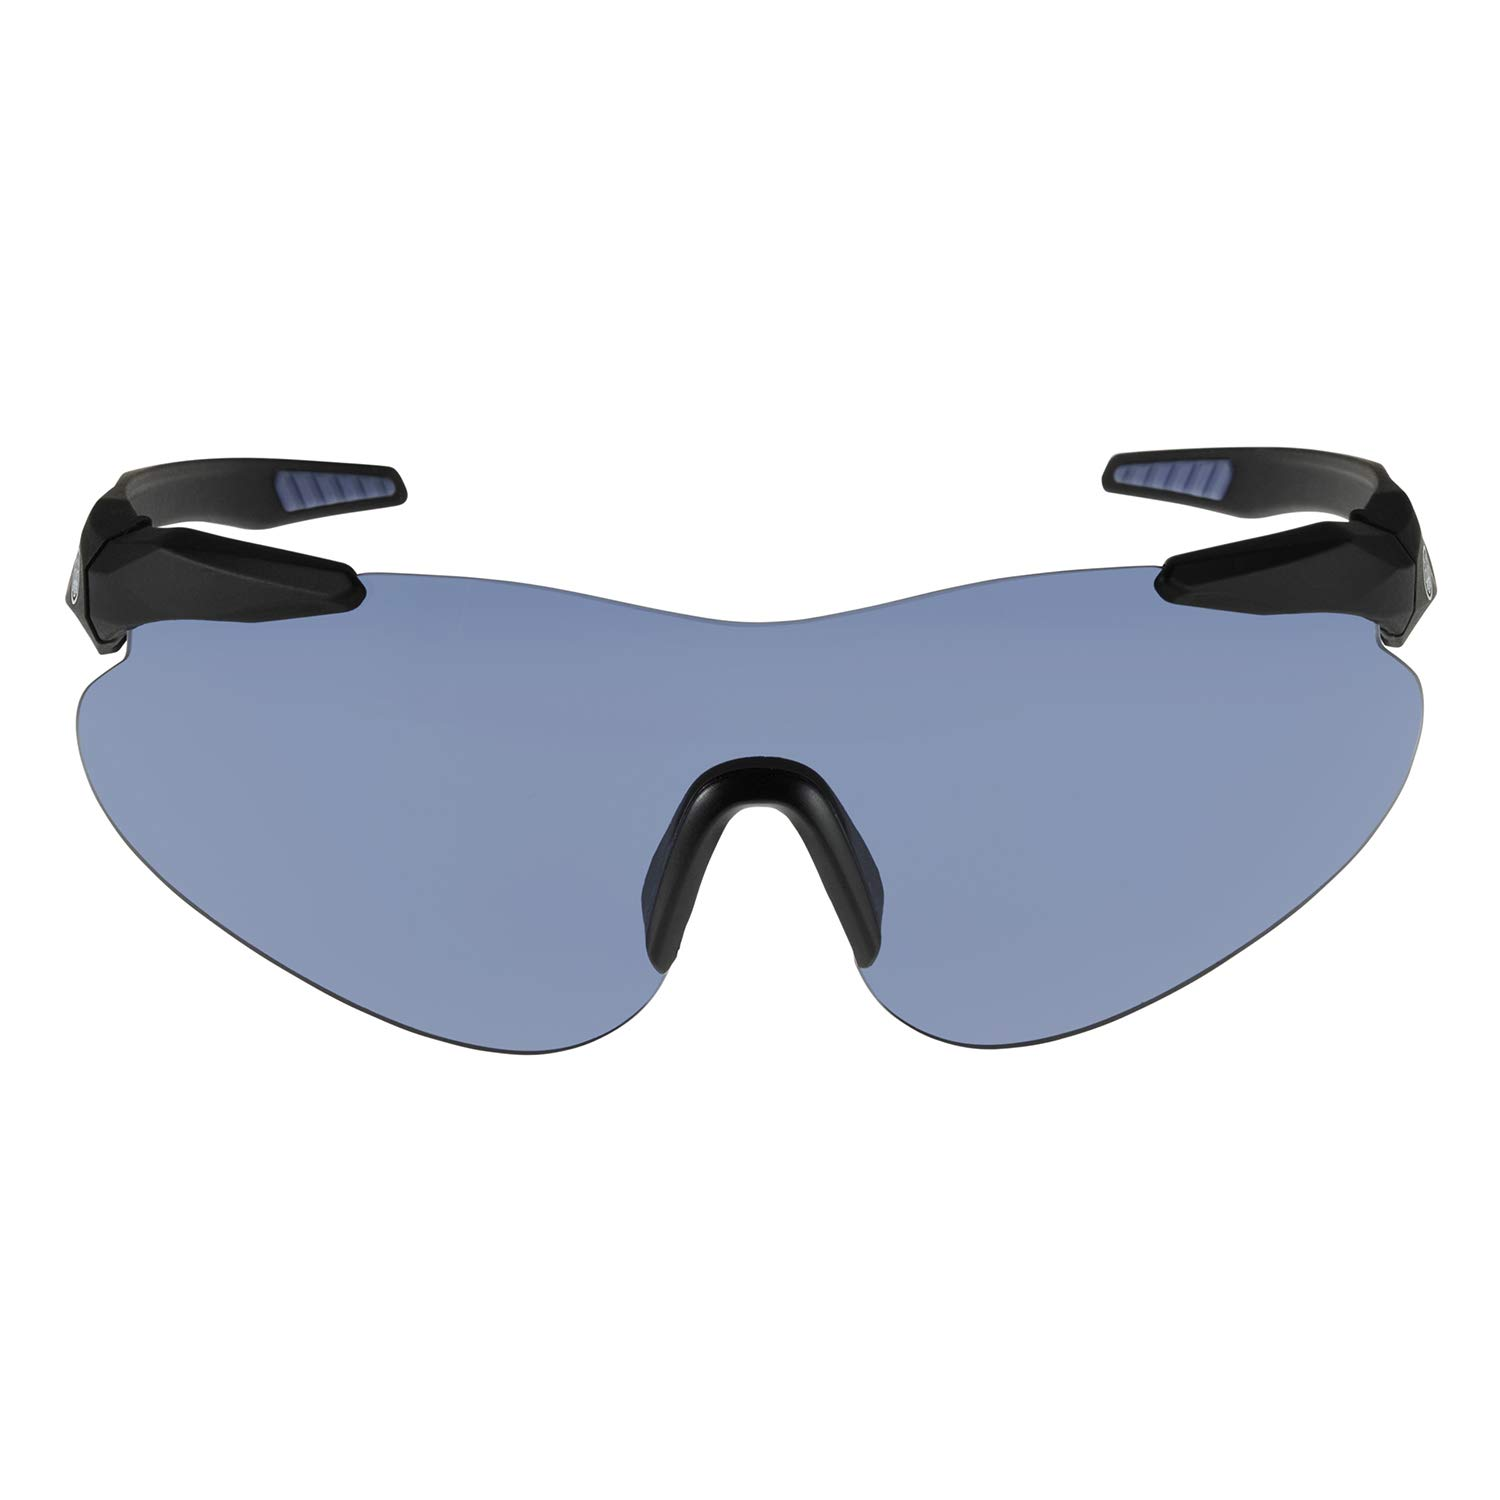 Beretta Shooting Glasses with Policarbonate Injected Lens, Smoke by Beretta